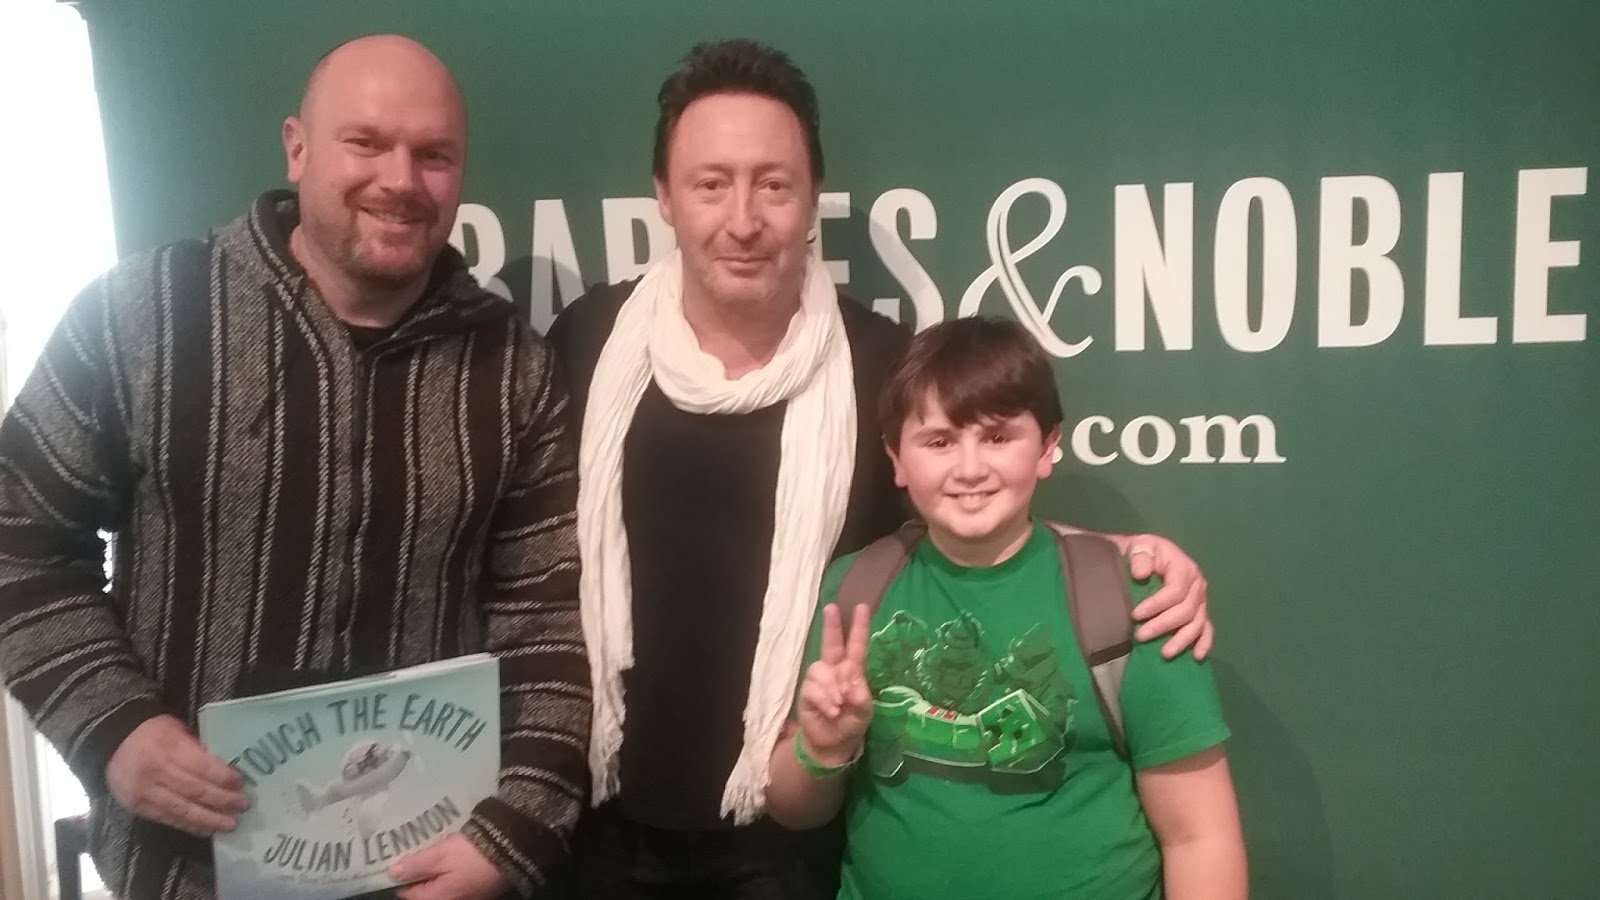 Julian Lennon Touch The Earth Book Signing Event